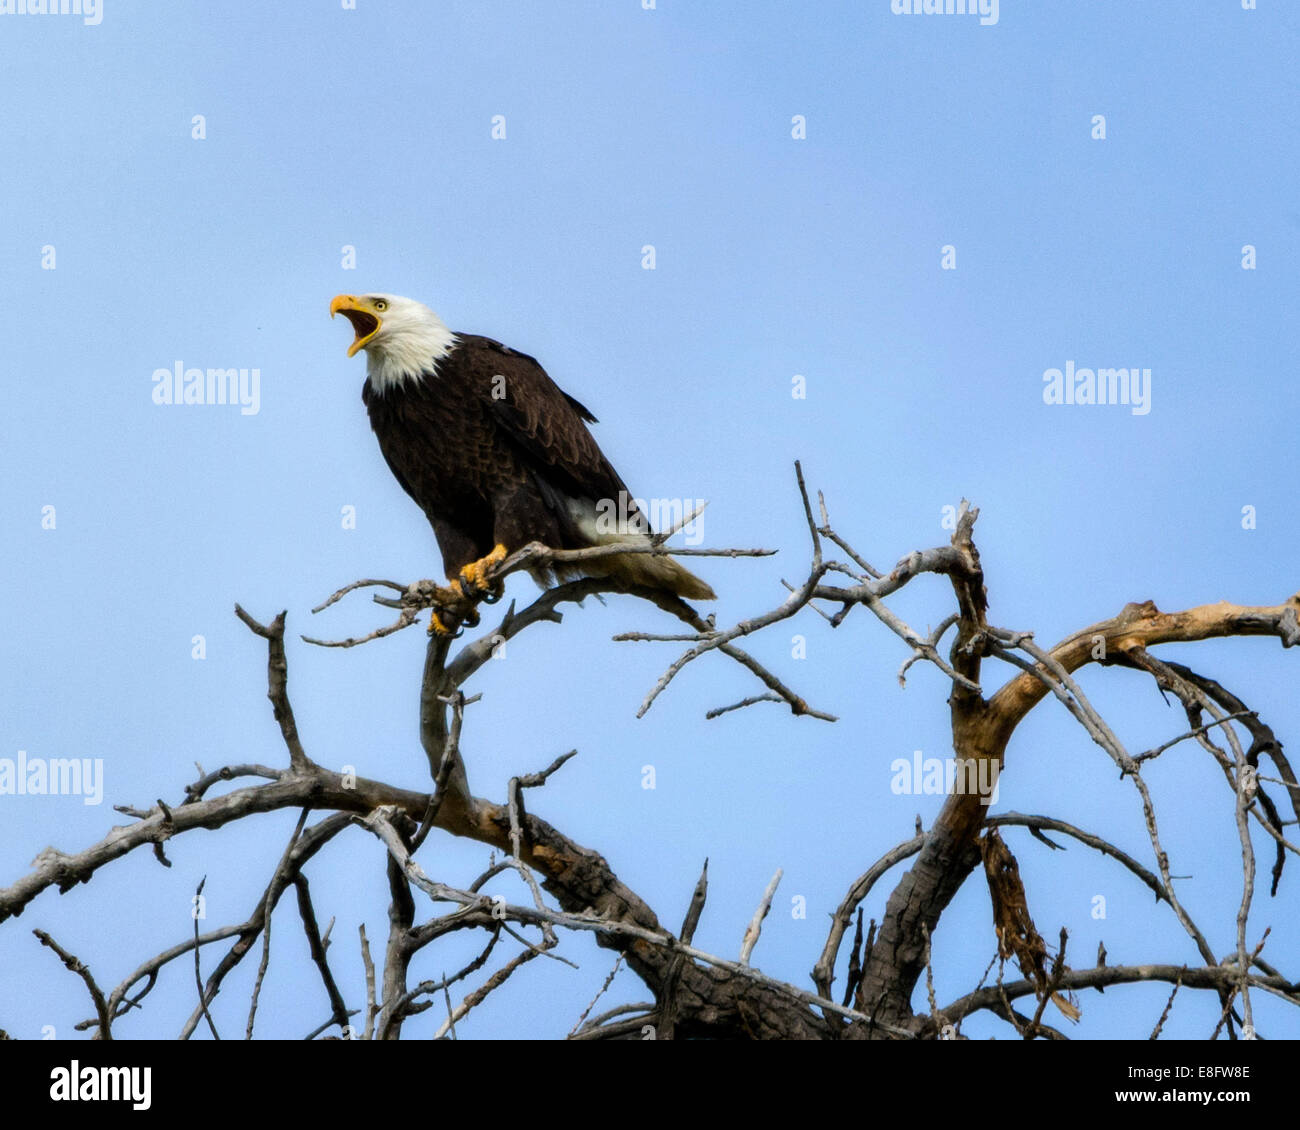 USA, Colorado, Bald Eagle Screeching in Nesting Tree - Stock Image